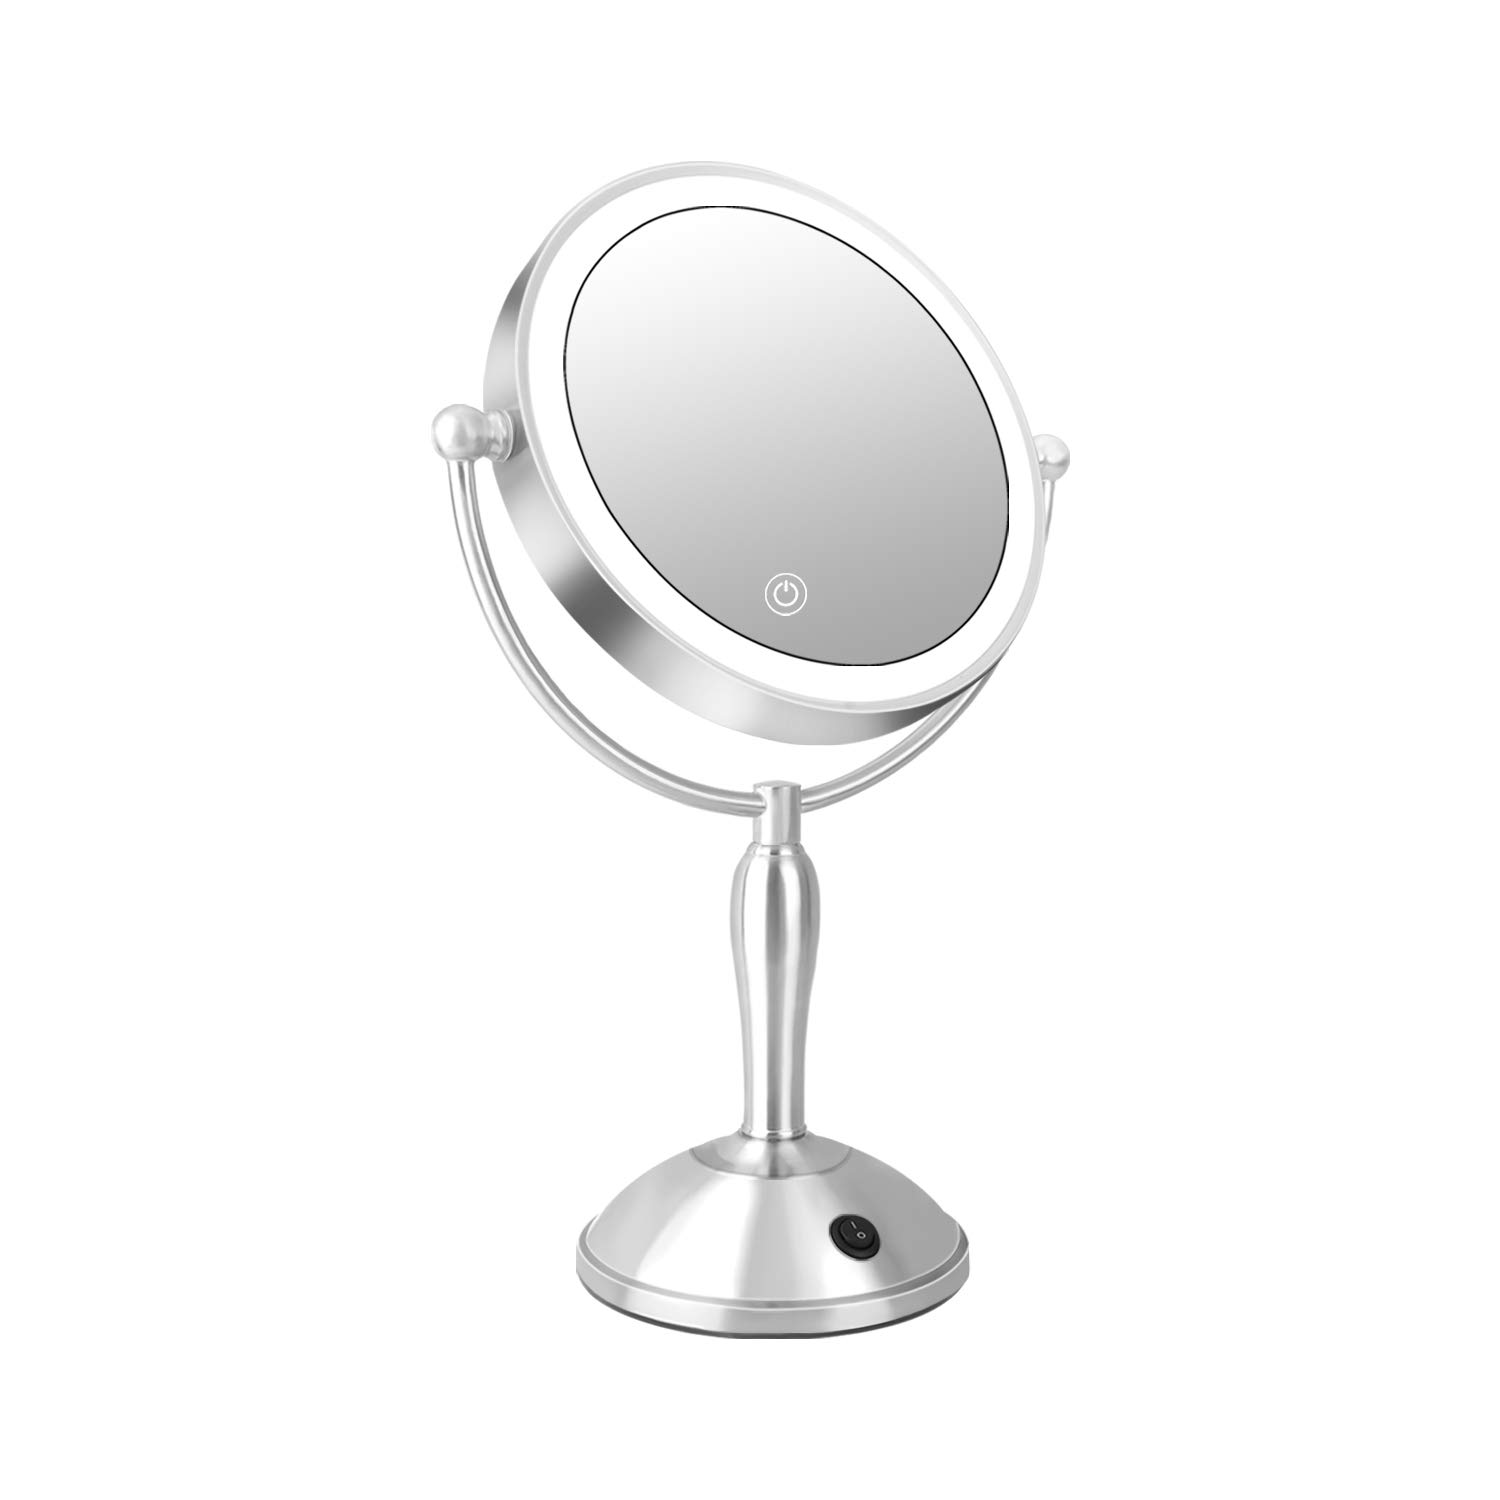 Dorafair Lighted Makeup Mirror 10x Magnification, 3 Color Adjustable Lights Double-Sided Mirror 360 Rotating Professional Vanity Mirror Makeup Mirrors, AC Adapter or 4AA Operated(Brushed Nickel) by DORAFAIR